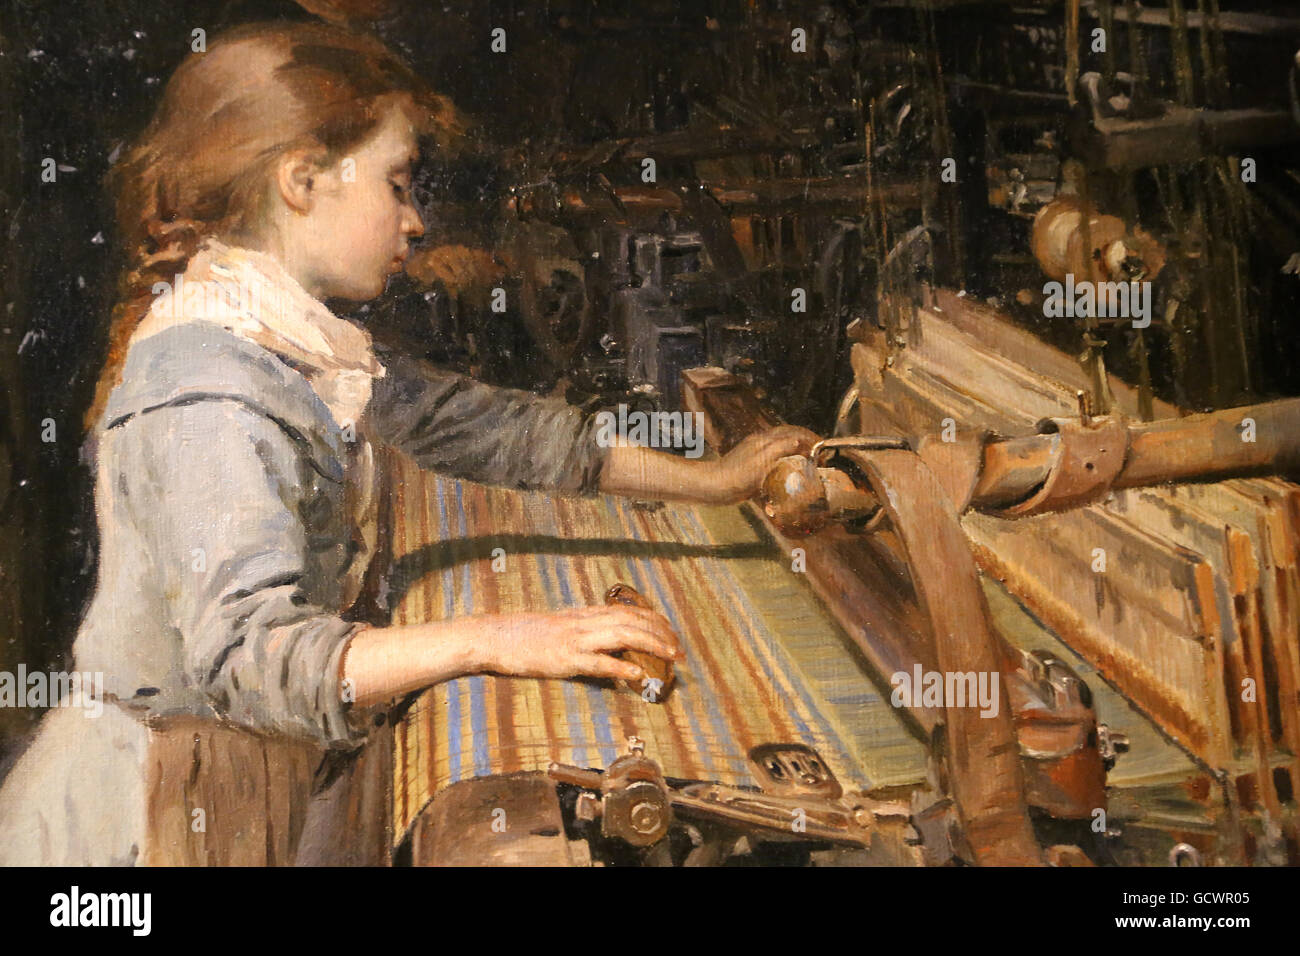 The working girl by Joan Planella, 1885. Museum of the History of Catalonia, Barcelona. Spain. - Stock Image